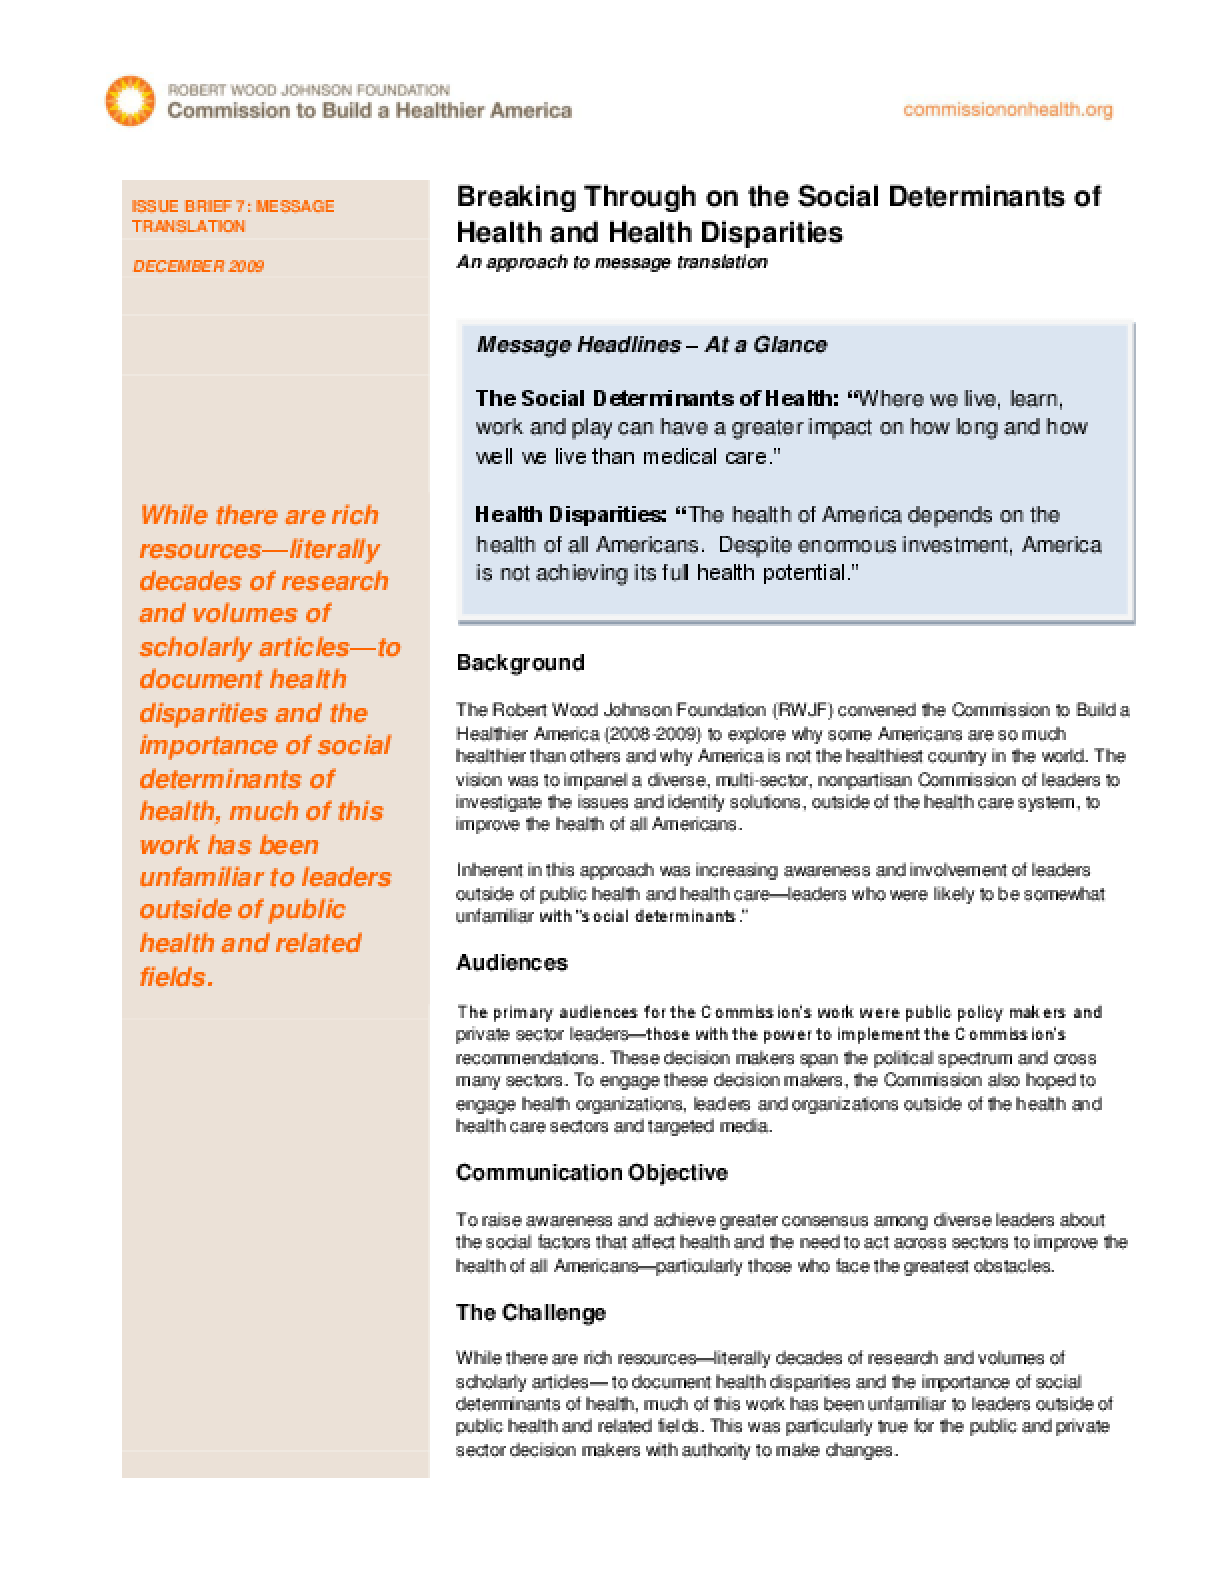 Breaking Through on the Social Determinants of Health and Health Disparities: An Approach to Message Translation